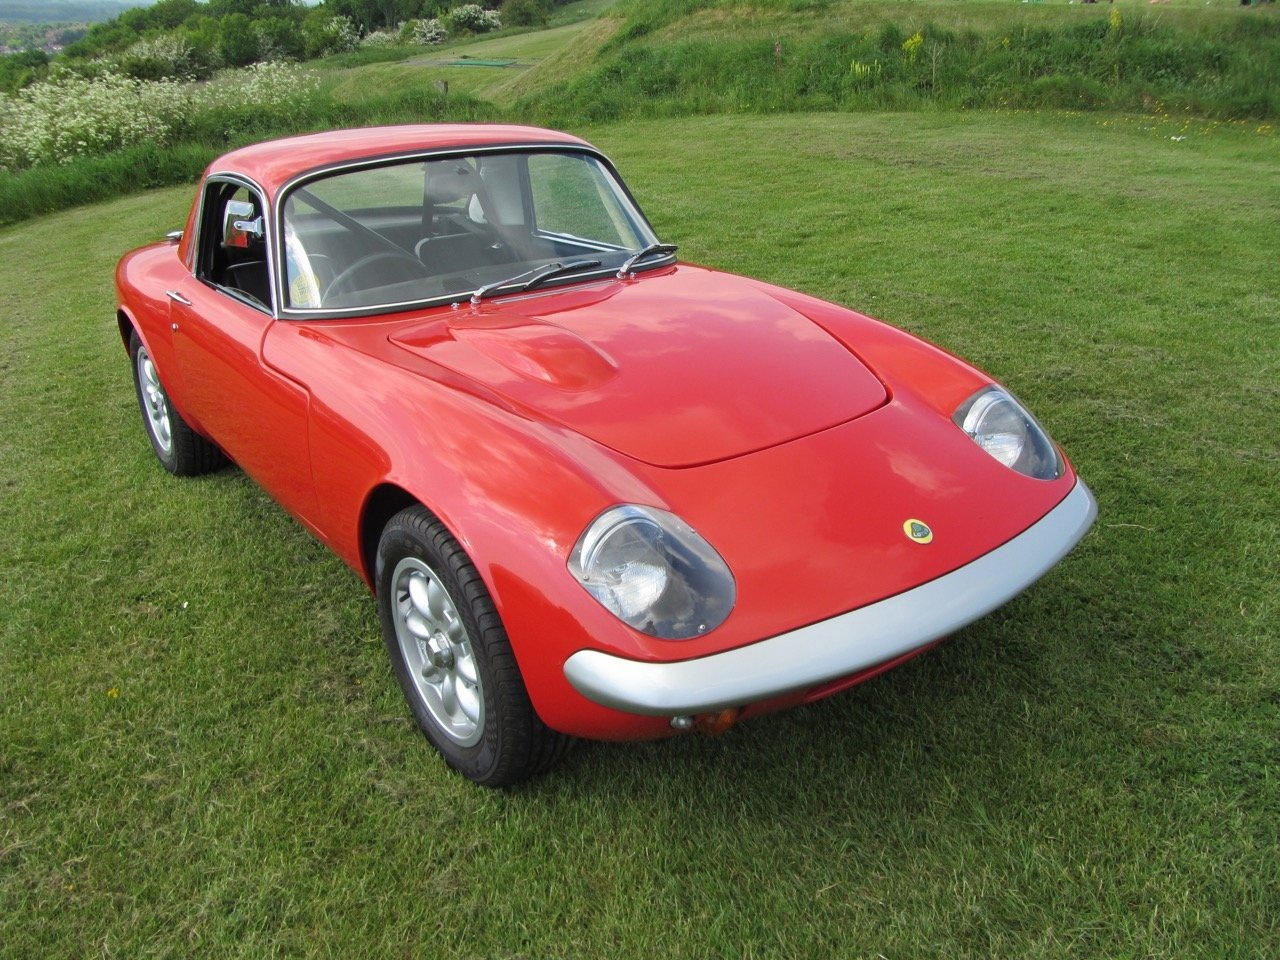 1969 Lotus Elan S4 SE FHC (26R evocation) For Sale (picture 1 of 6)